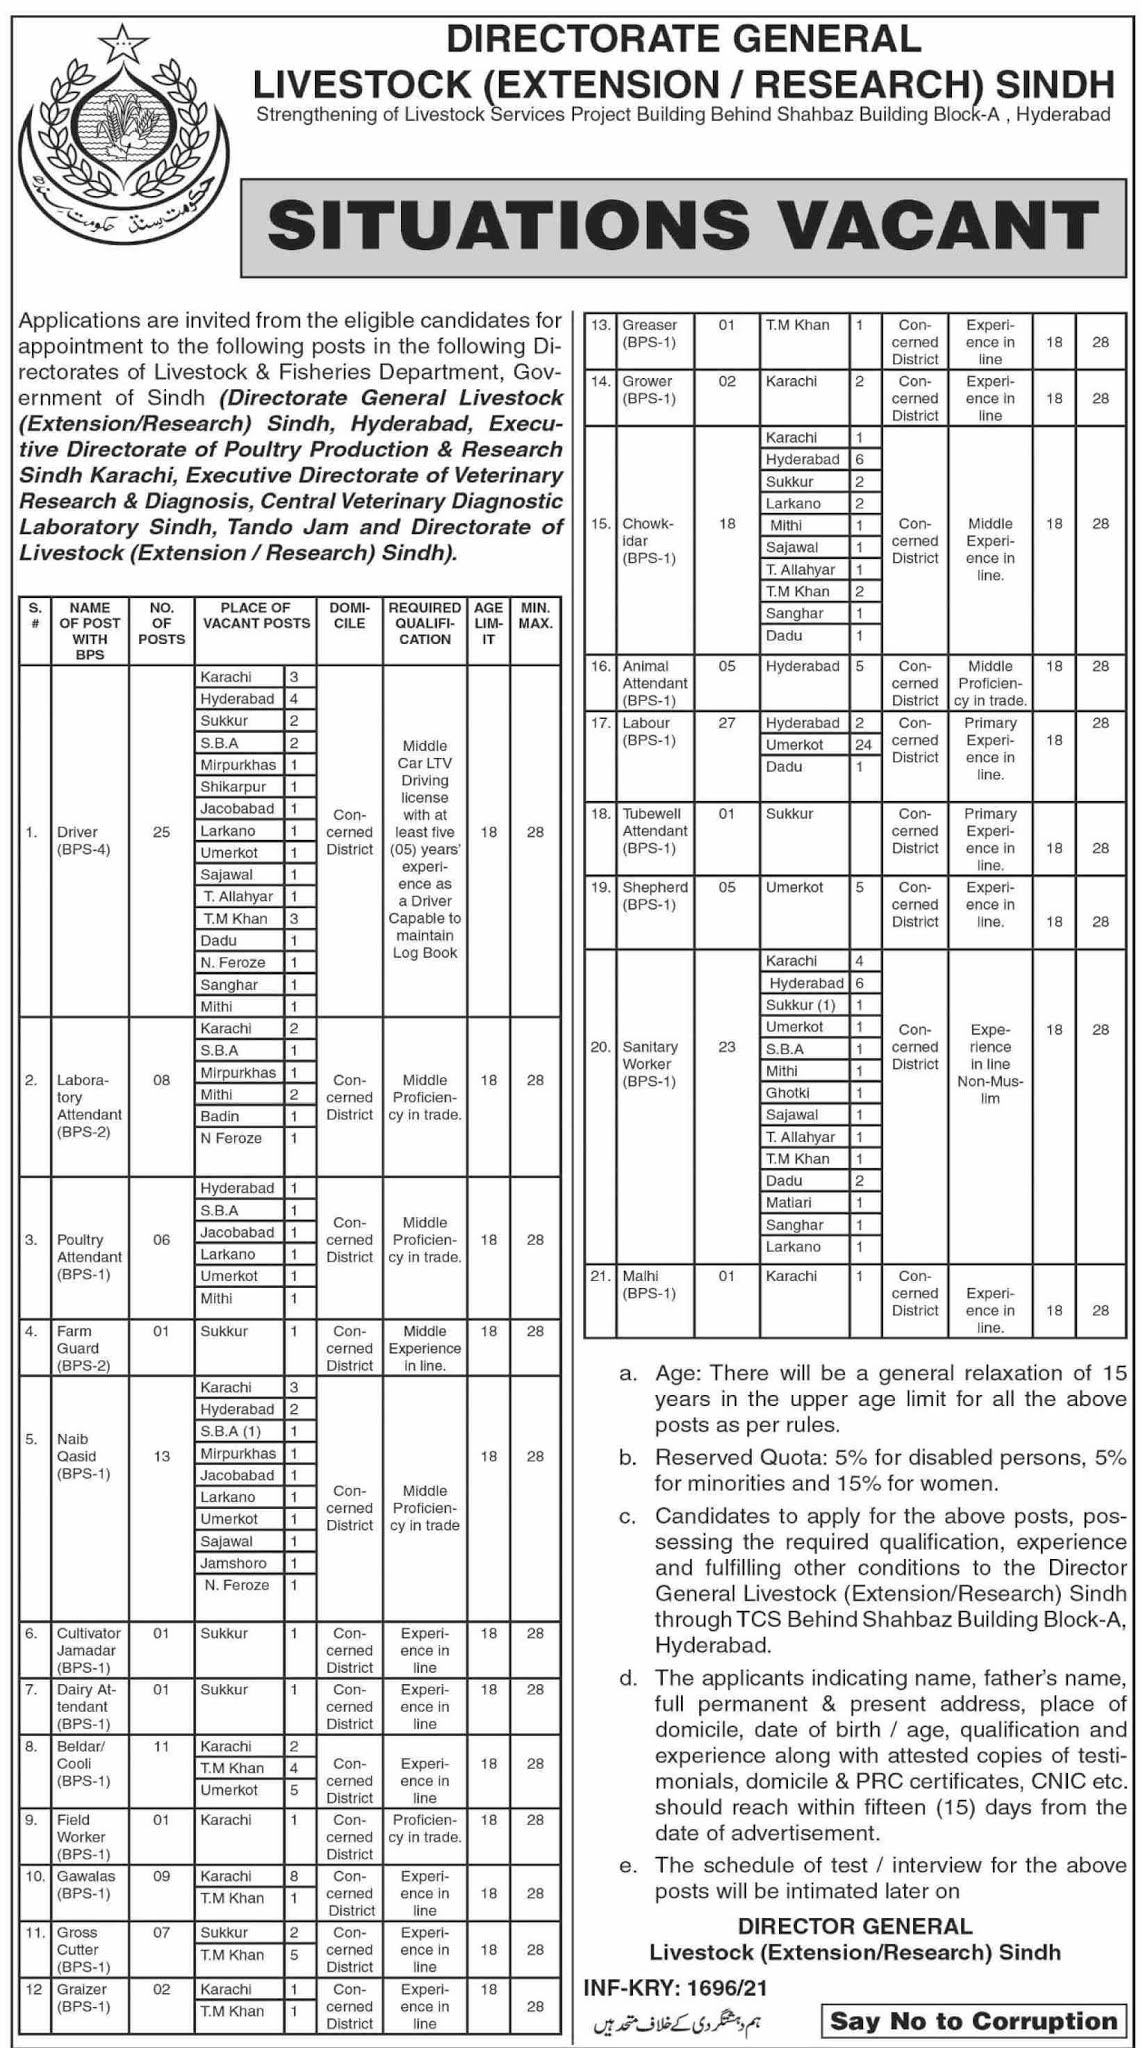 Directorate General Livestock (Extension/Research) Sindh Jobs 2021 in Pakistan